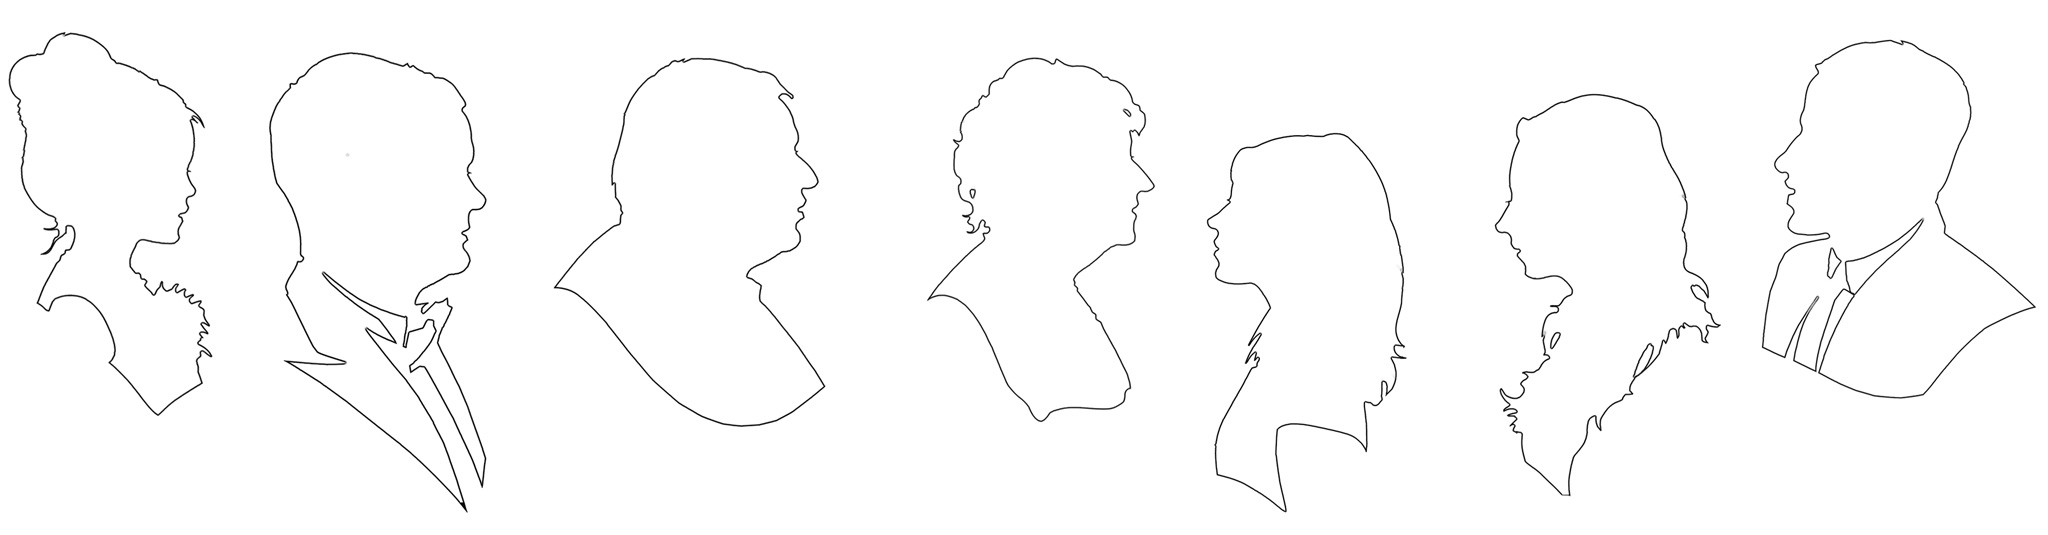 Silhouette outlines